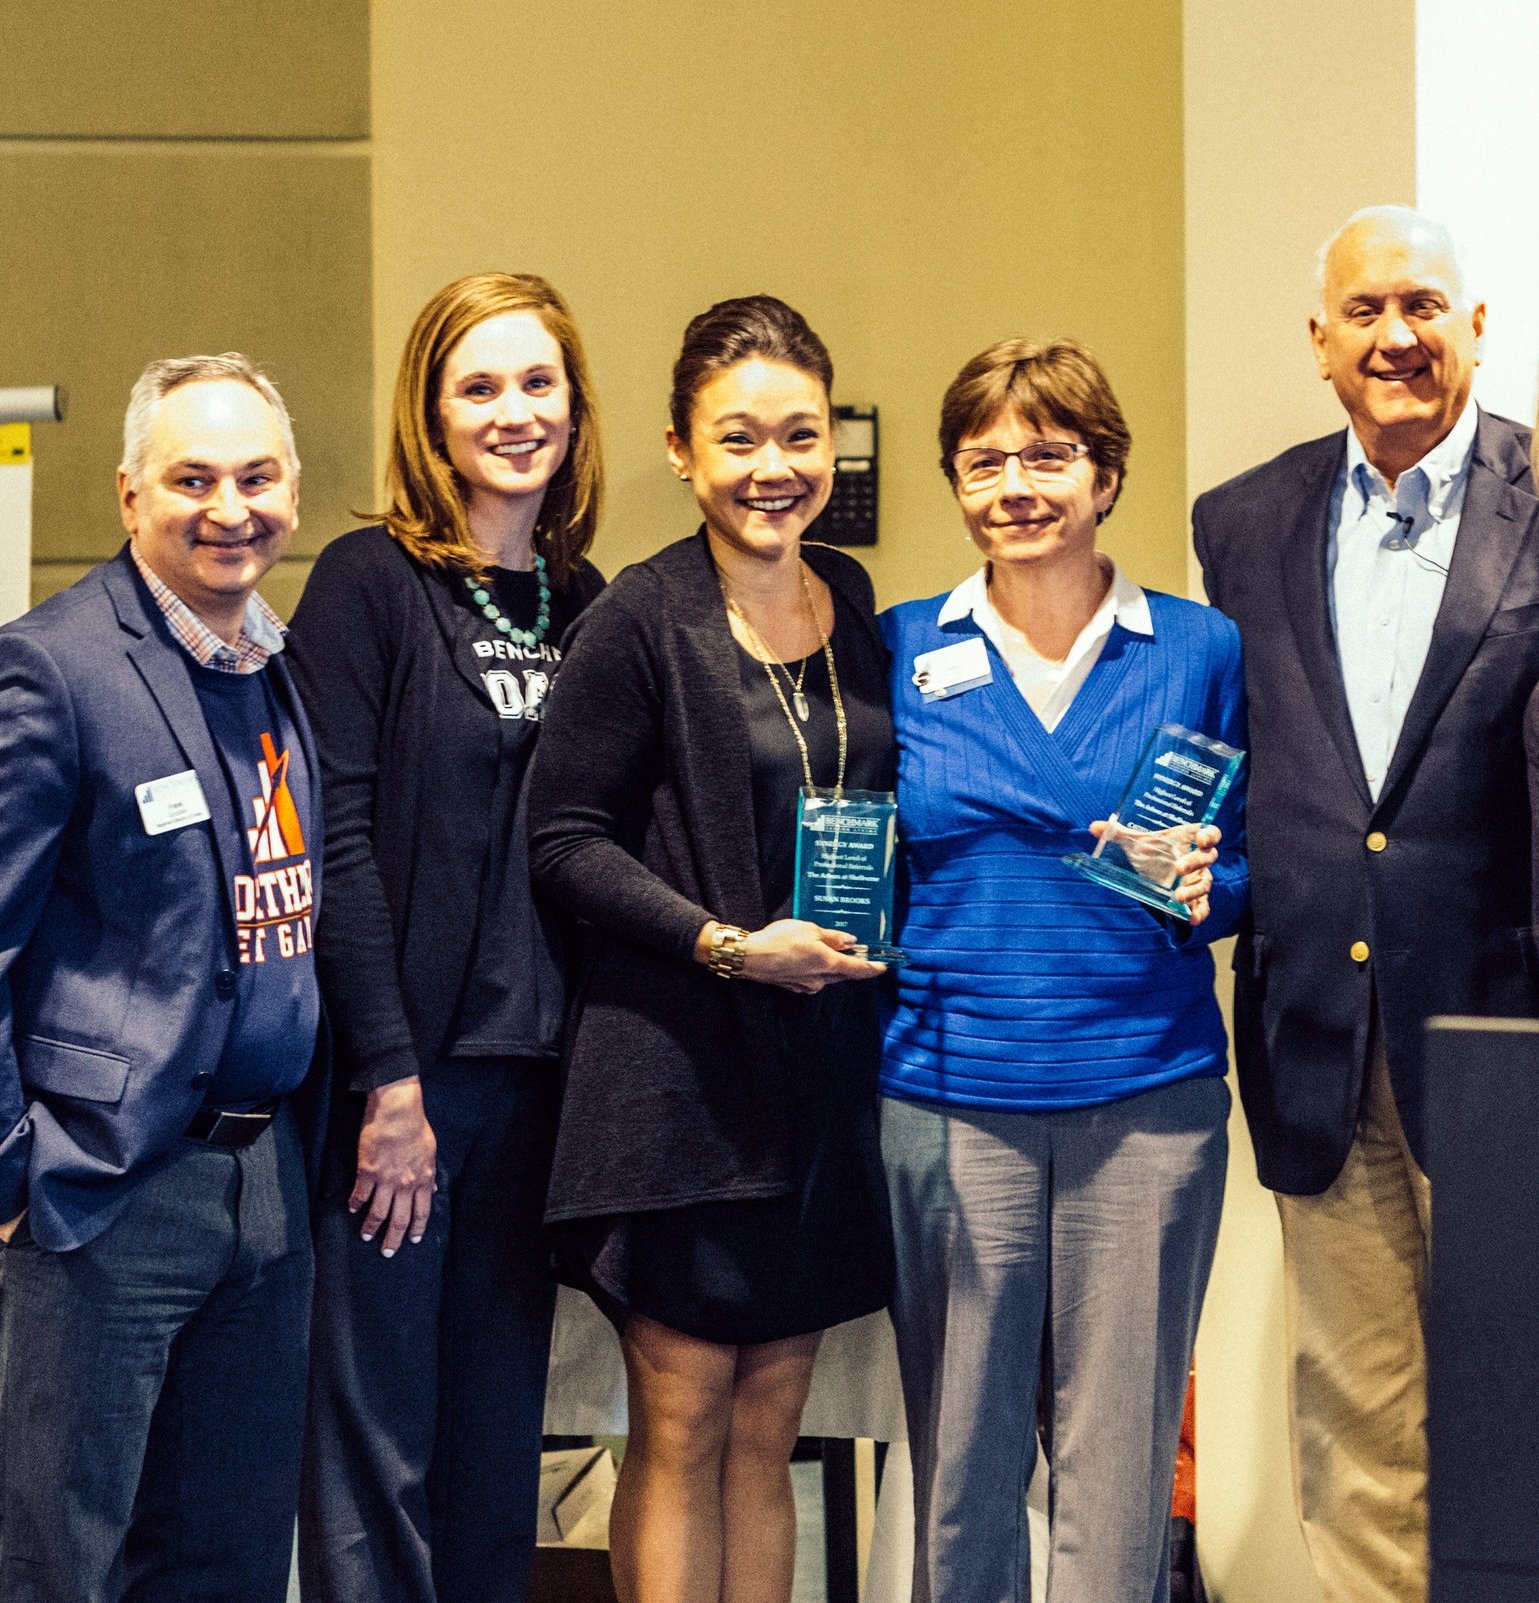 The Synergy Award - Highest results from professional referrals